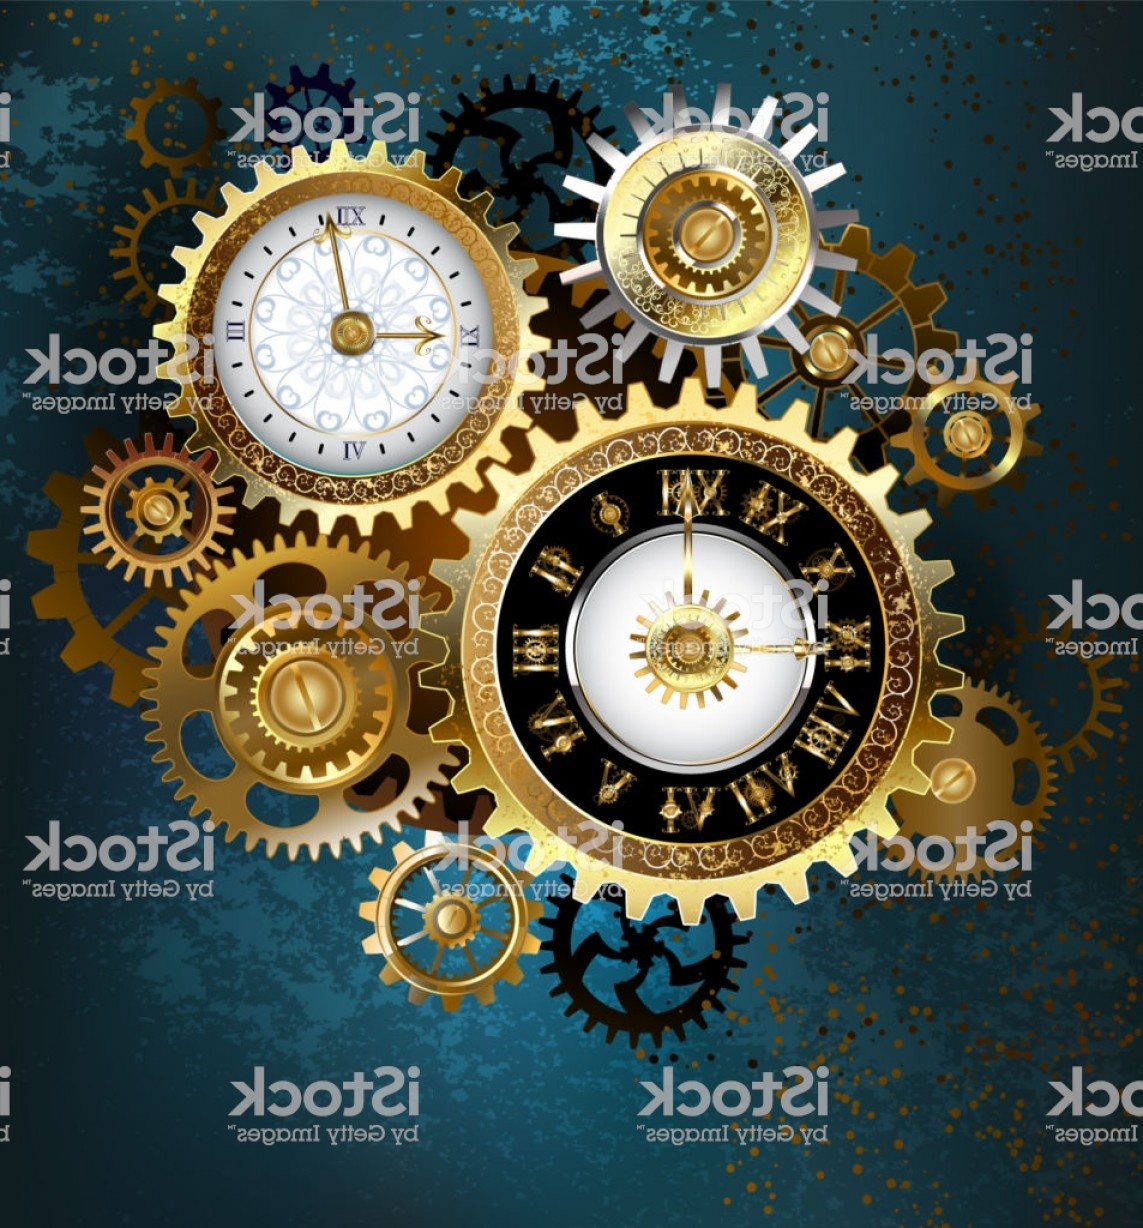 Watch Gears Vector: Two Steampunk Clocks With Gears Gm